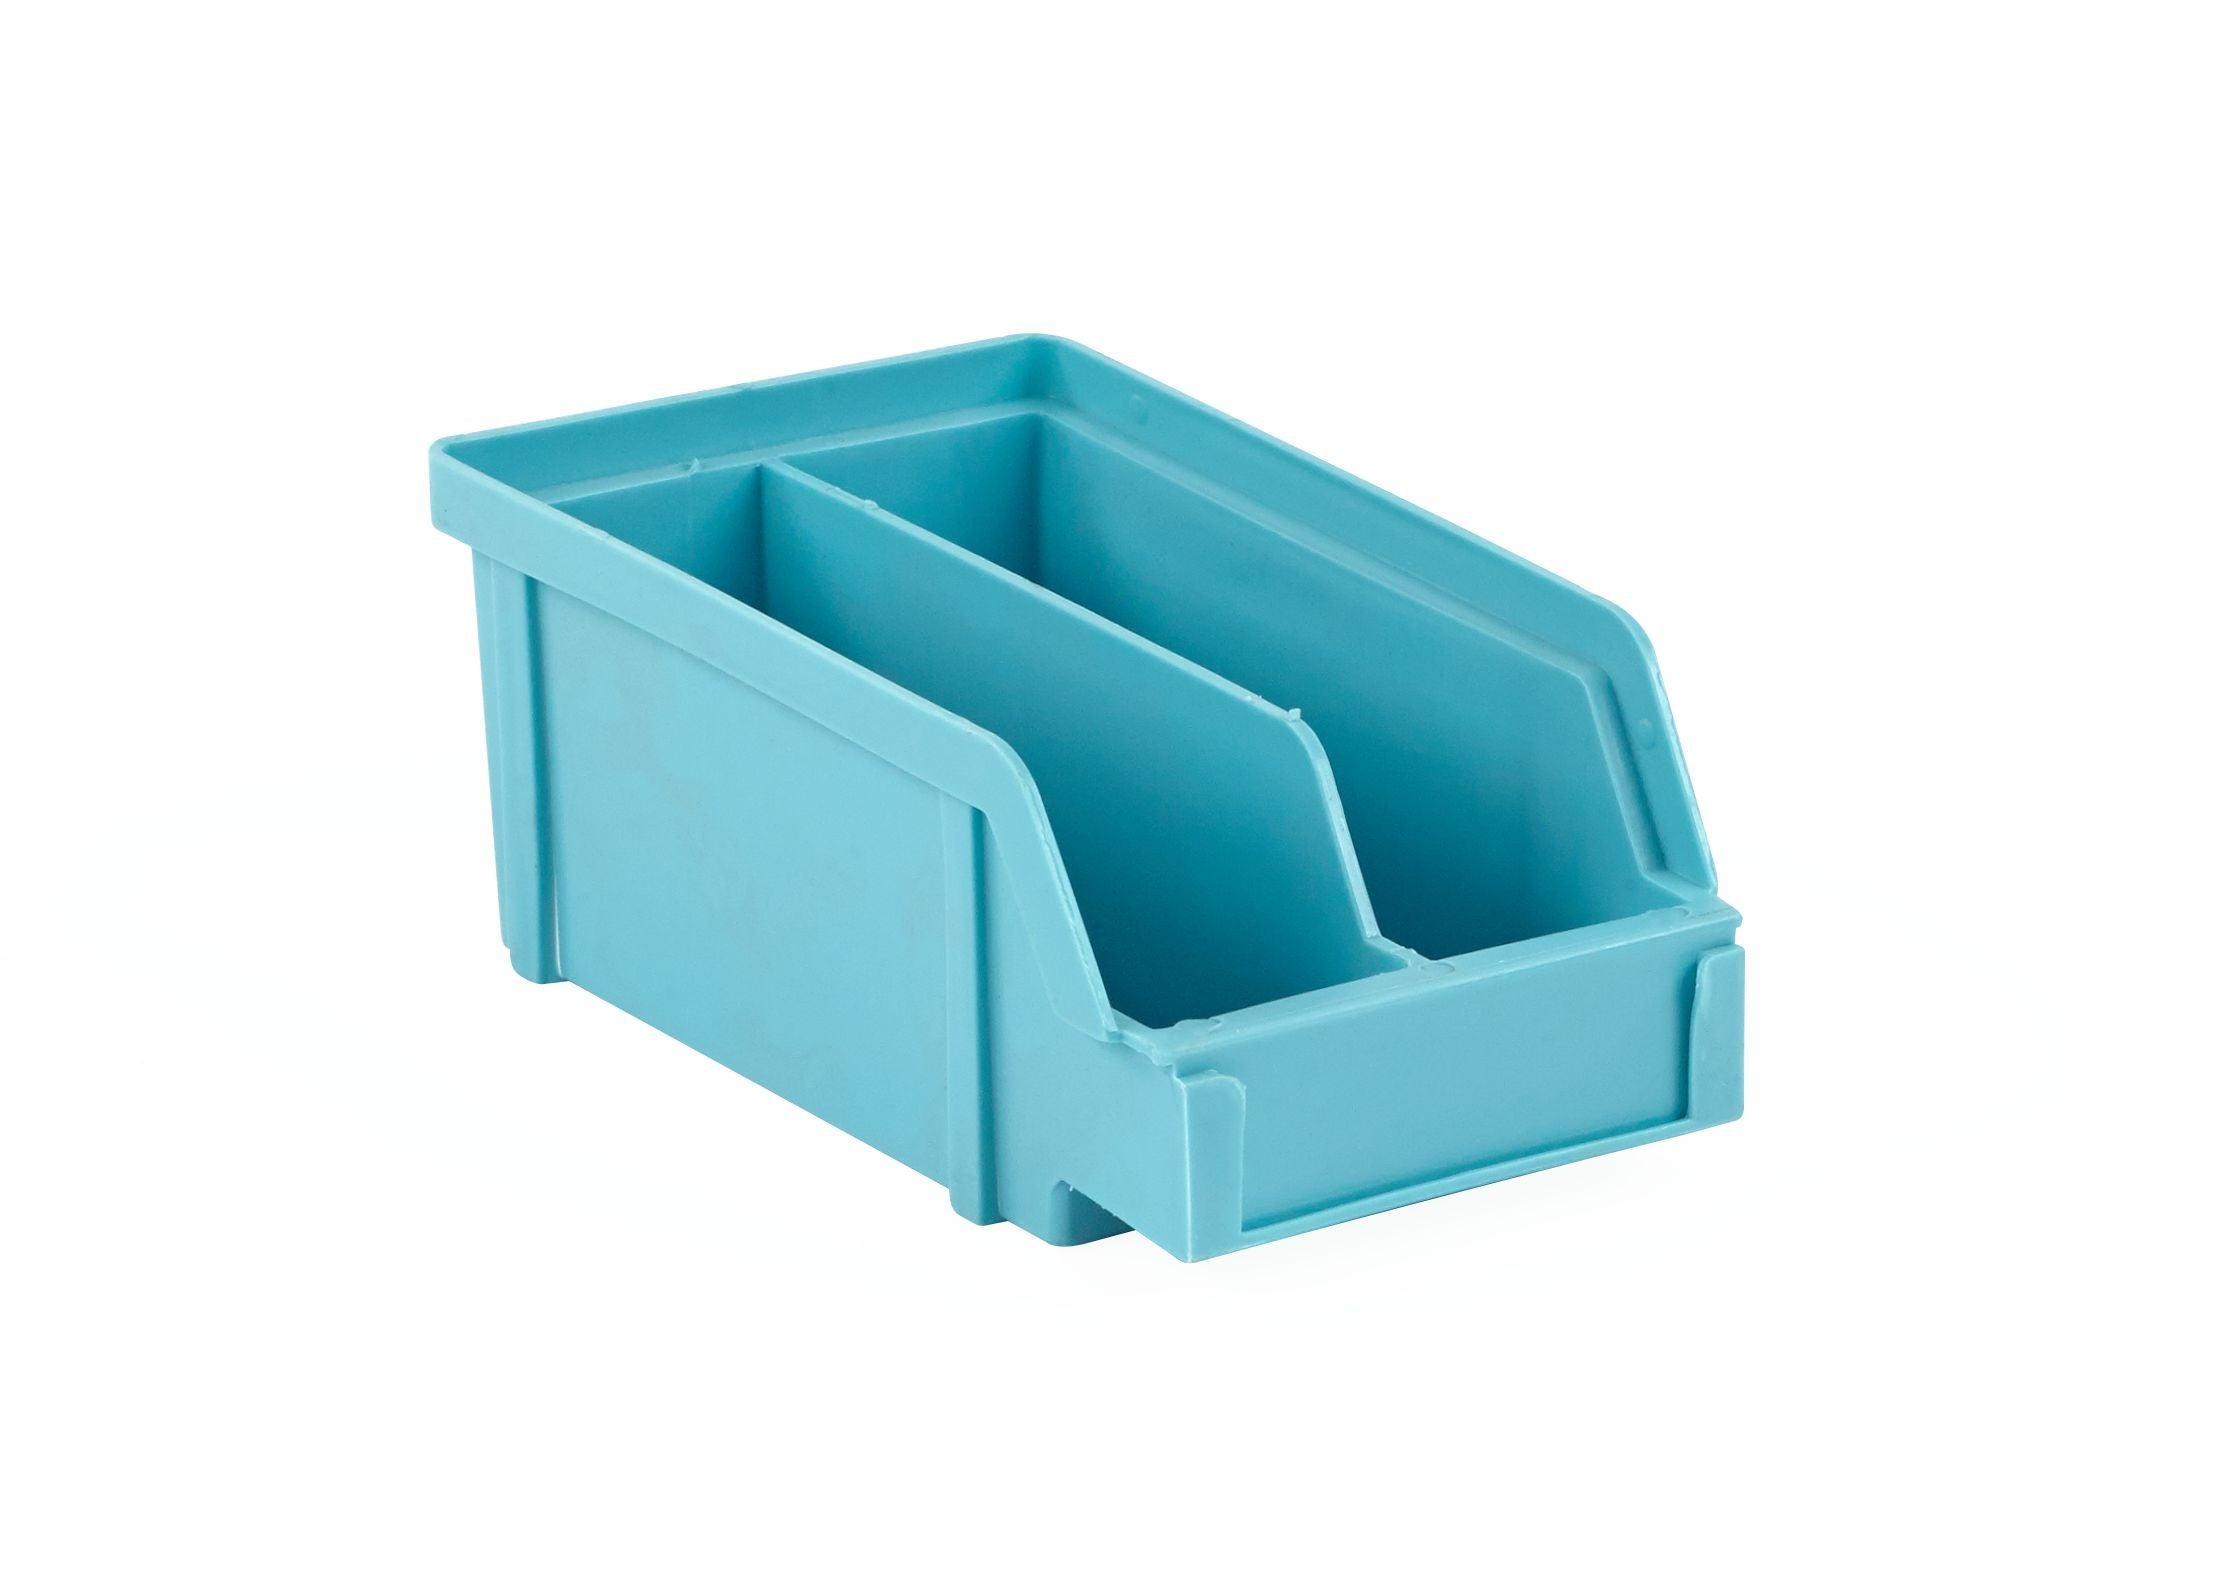 PB31-F | 9X9X5 PlastiBox Container | Pack of 8